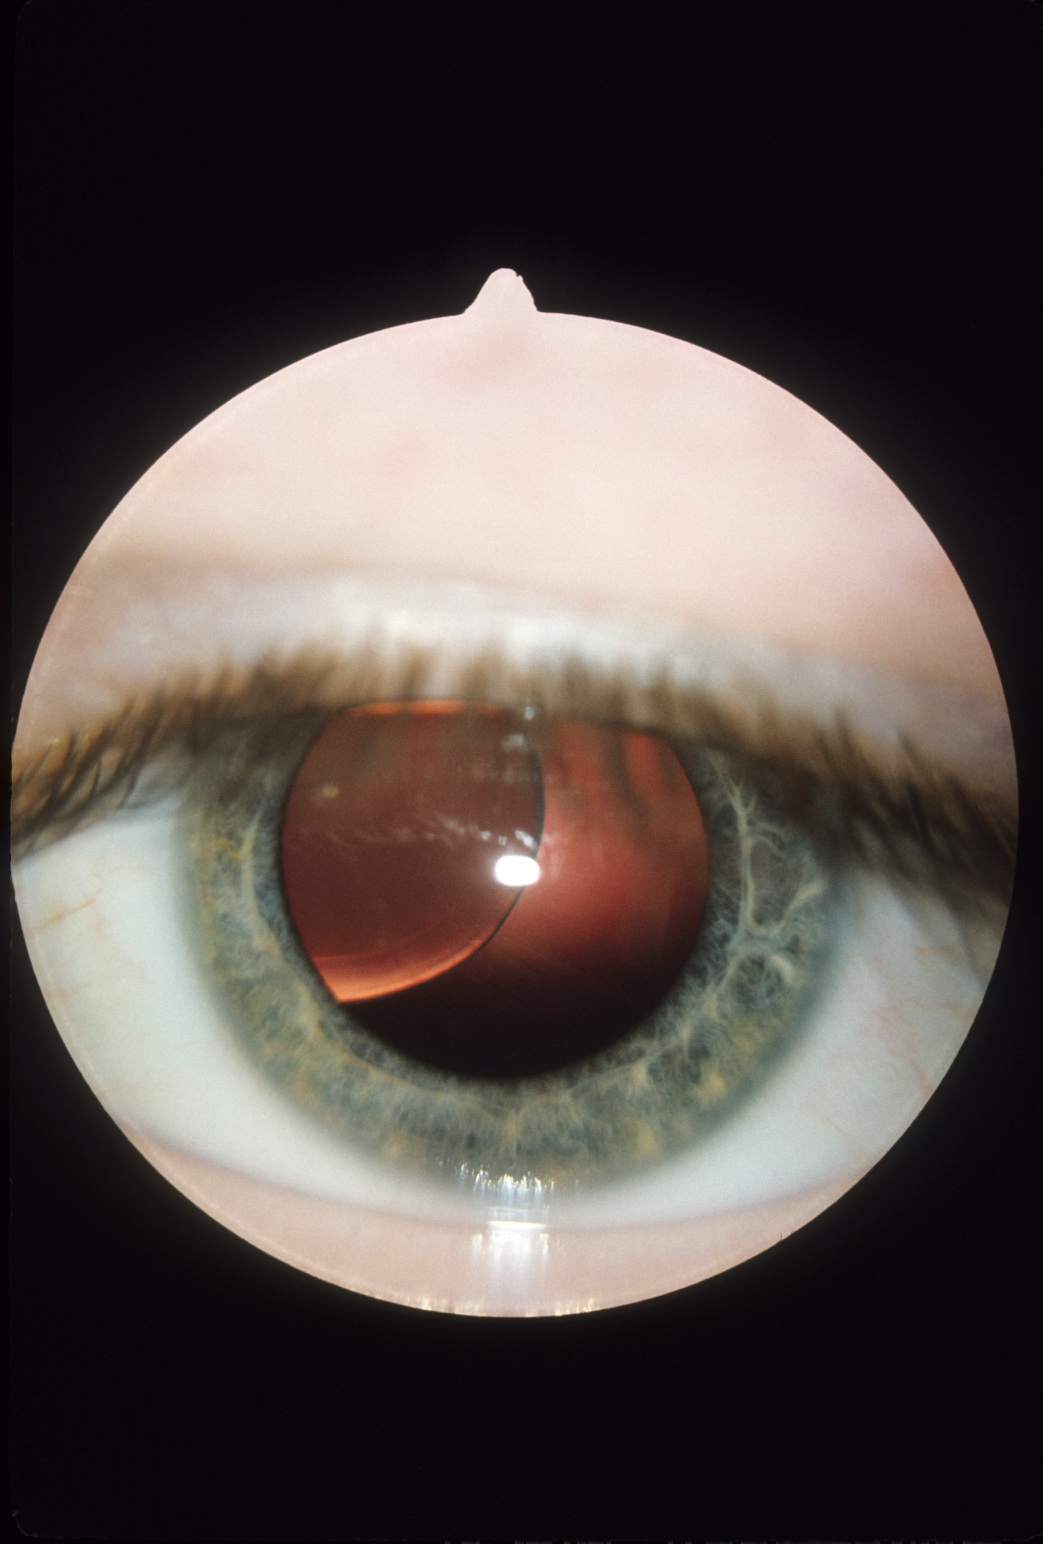 Dislocation of lens in homocystinuria